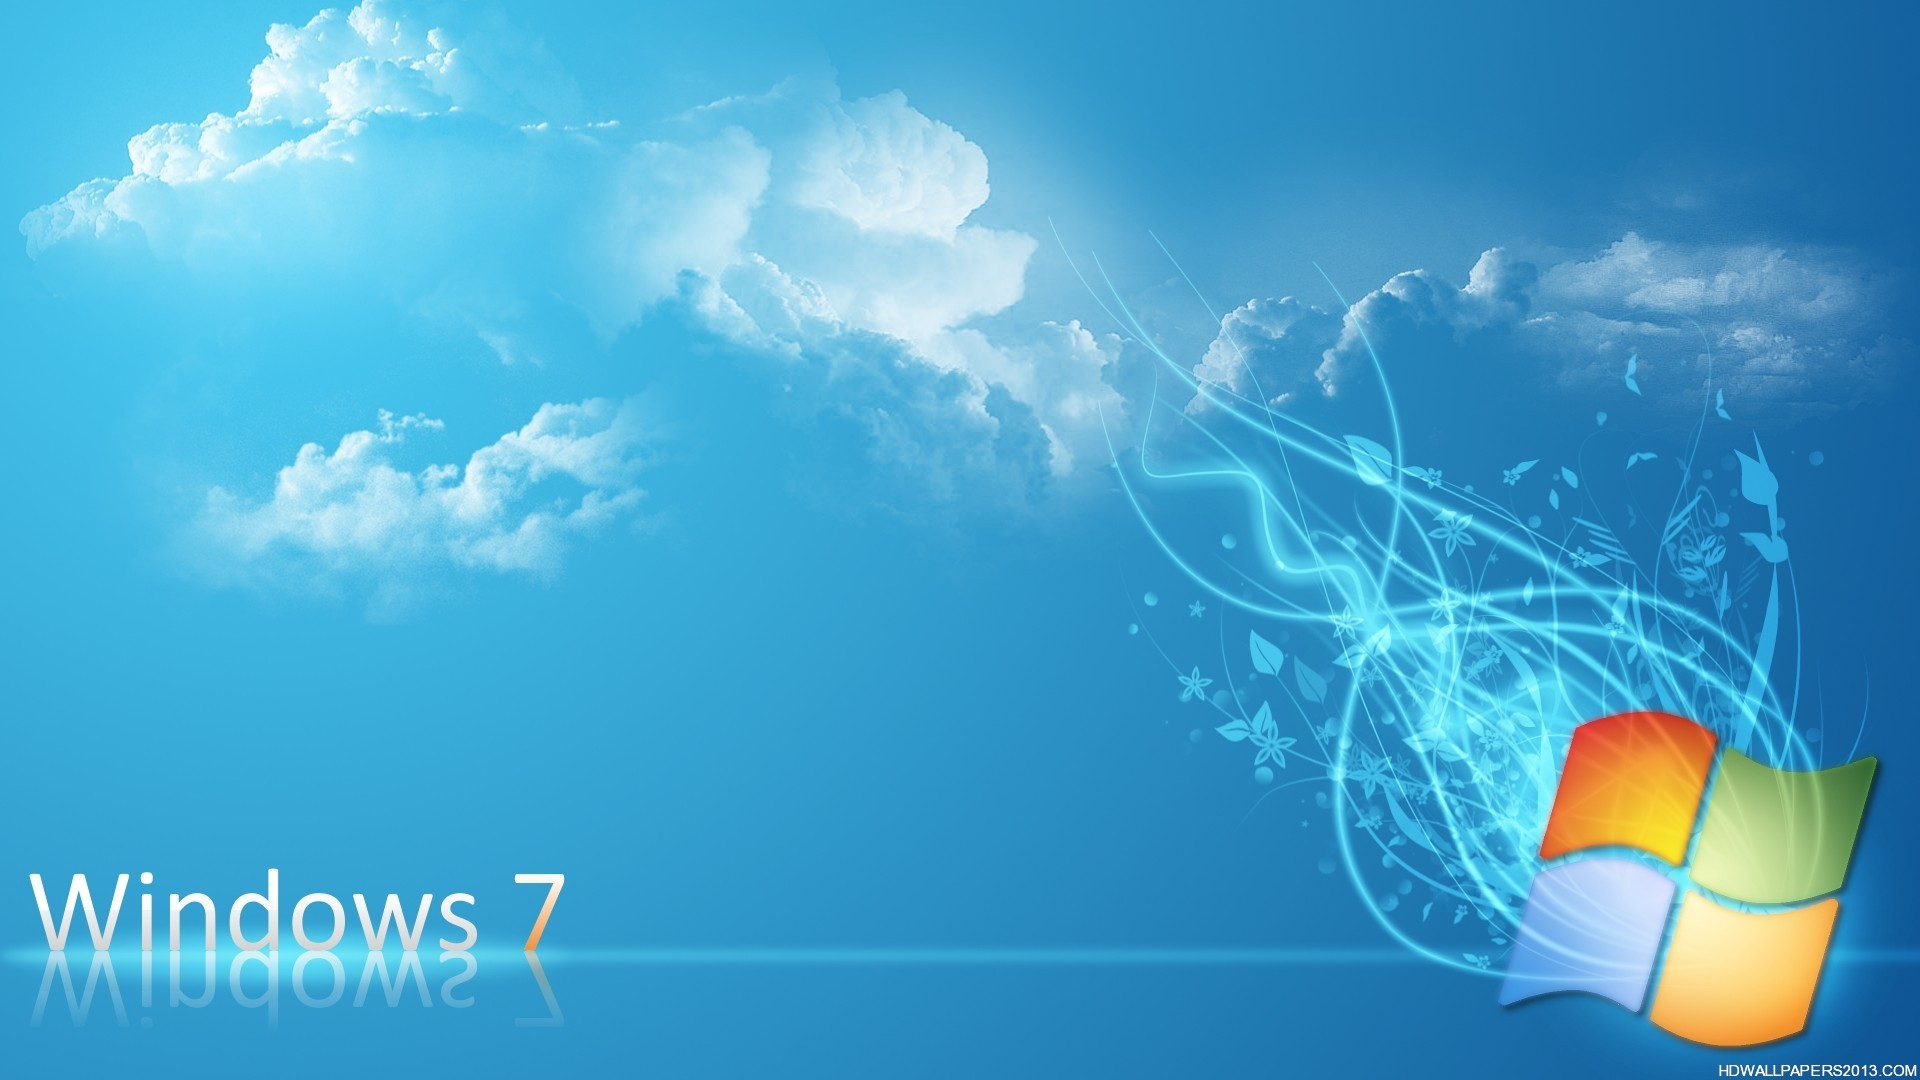 Windows 7 wallpapers hd hd wallpapers windows 7 wallpapers hd